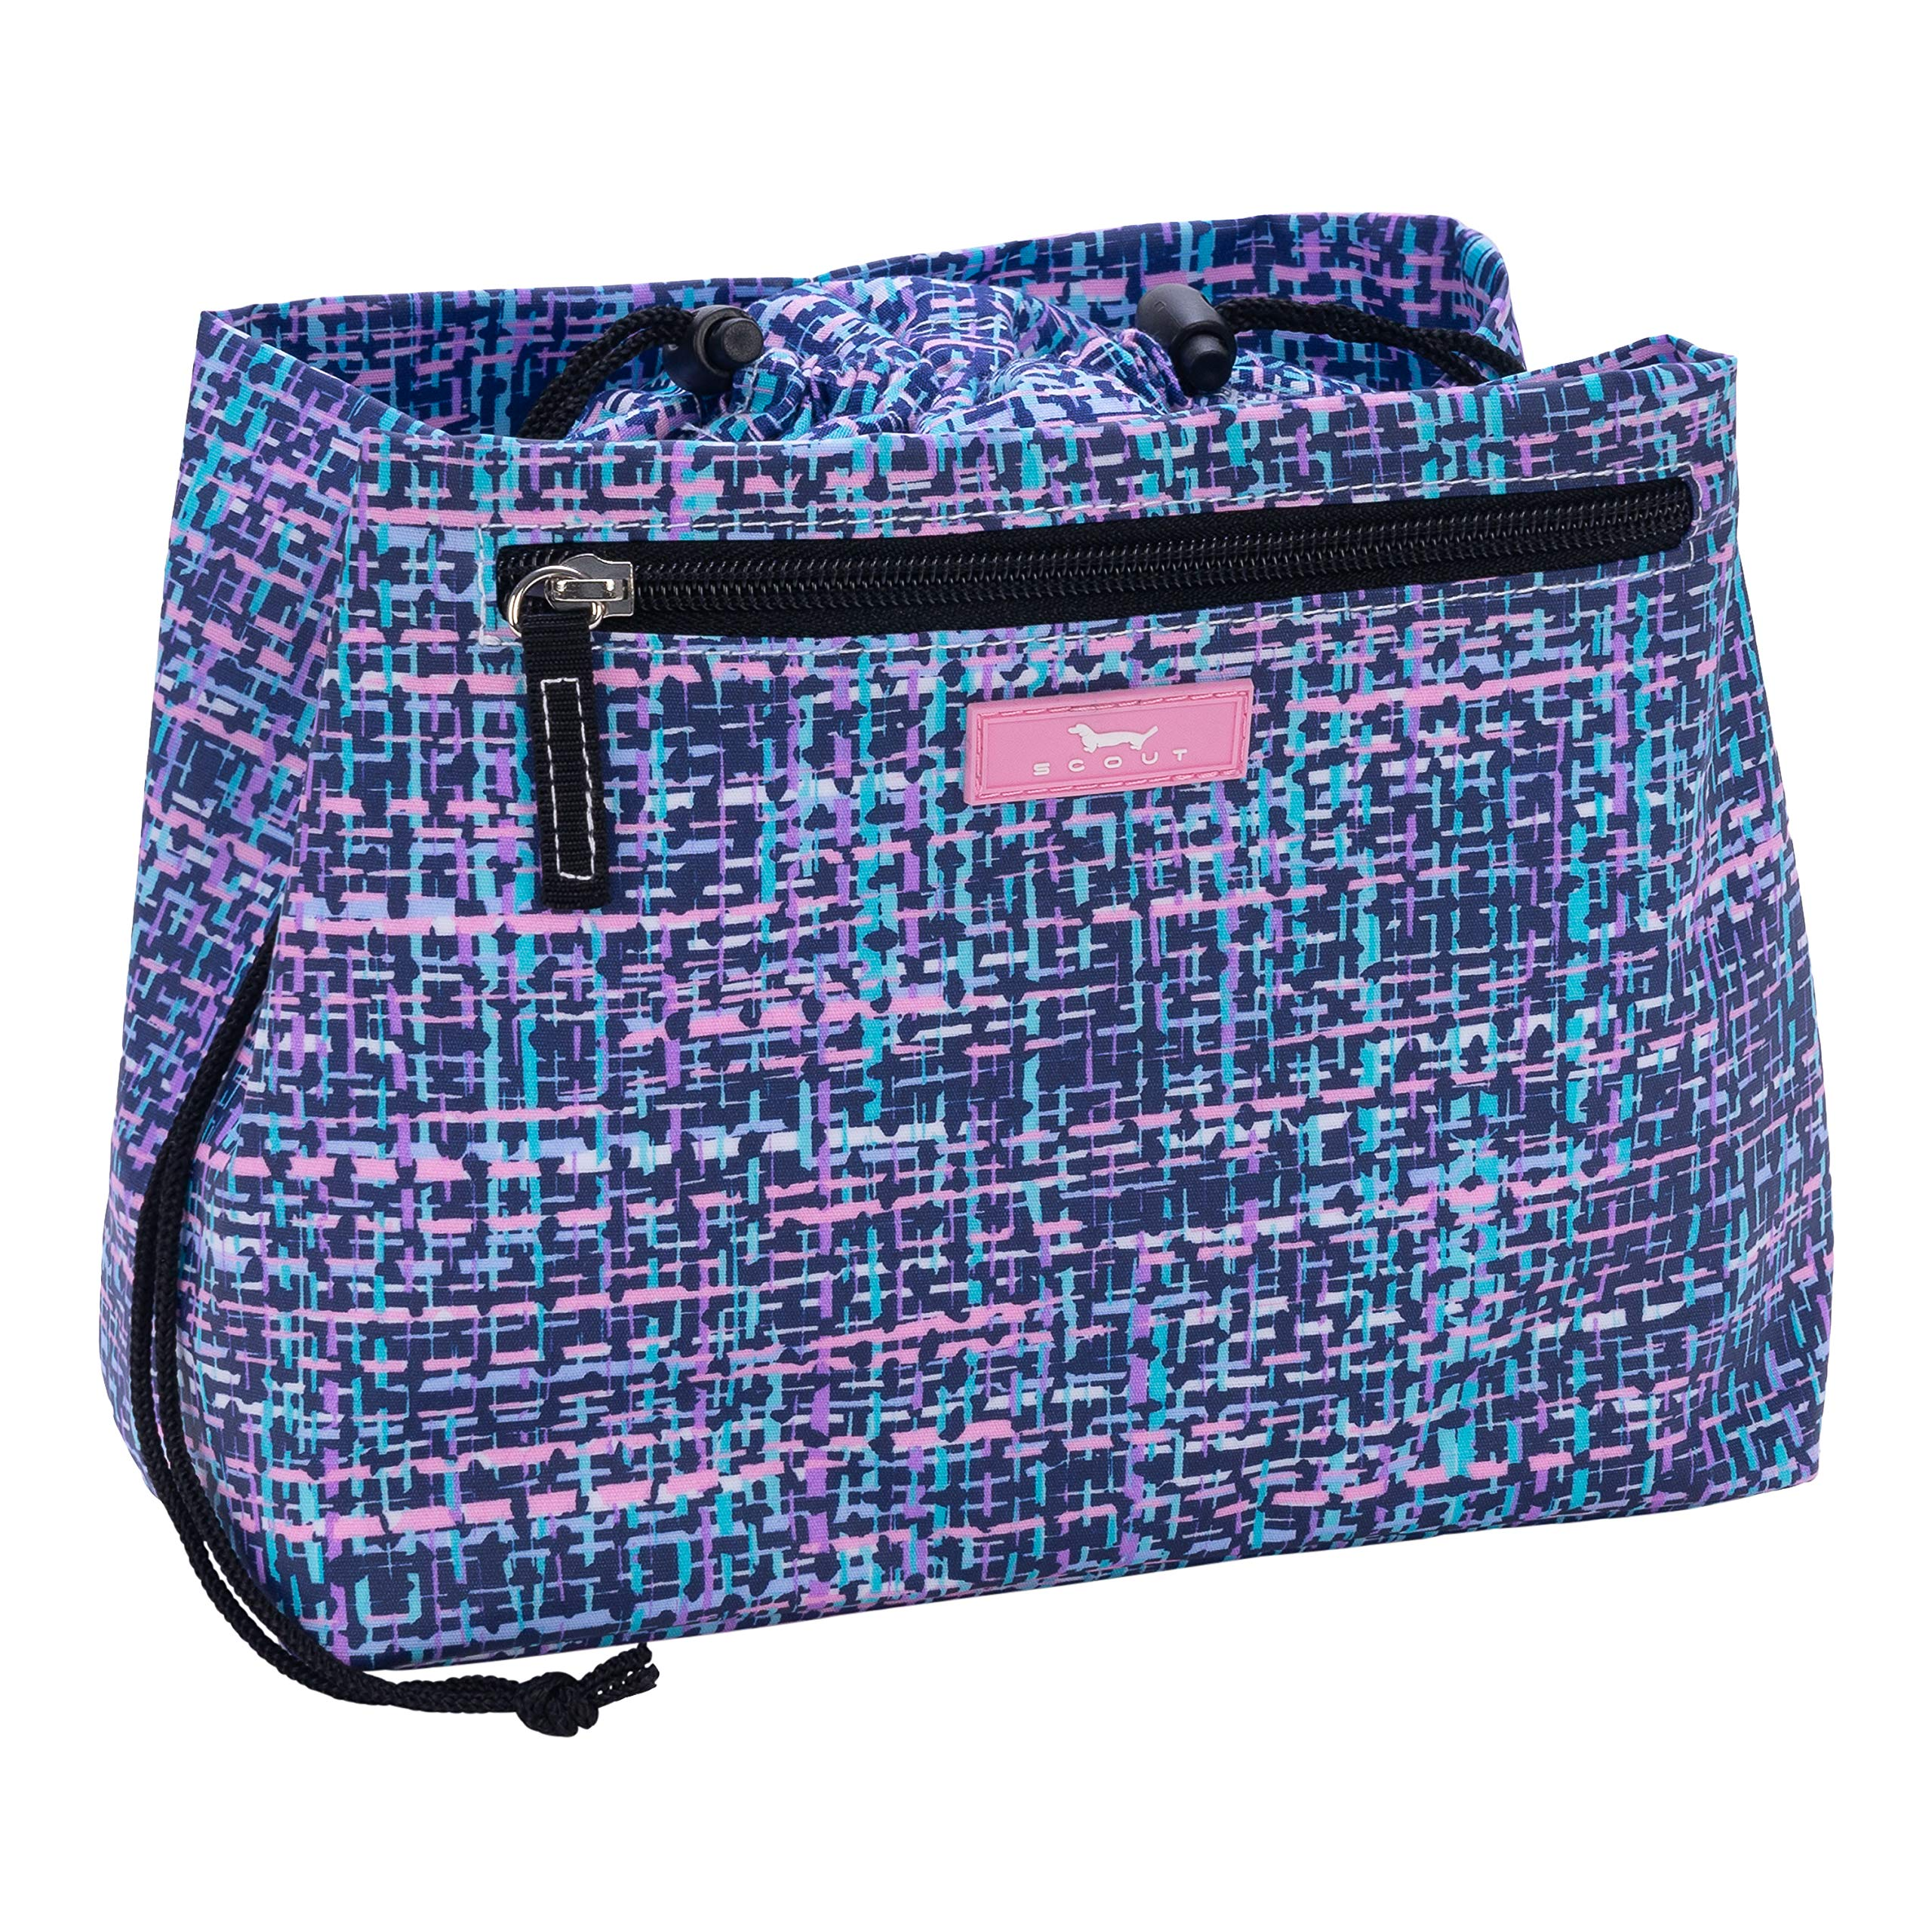 SCOUT Glam Squad Makeup & Cosmetic Bag, Cinch-Top Closure, 4 Open Pockets, Water Resistant, Tweedy Bird